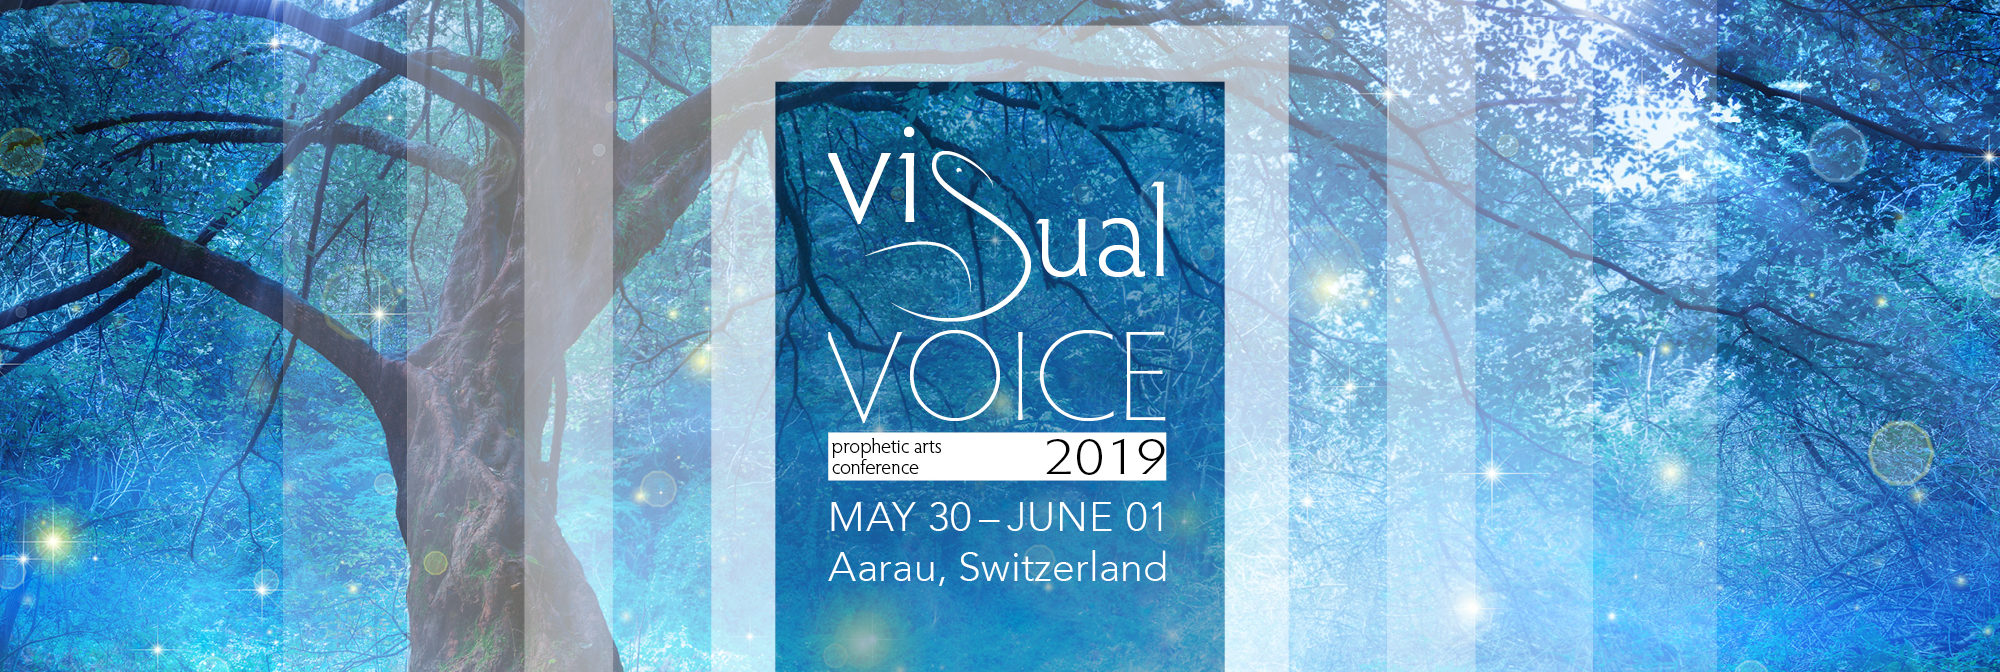 Visual Voice 2019